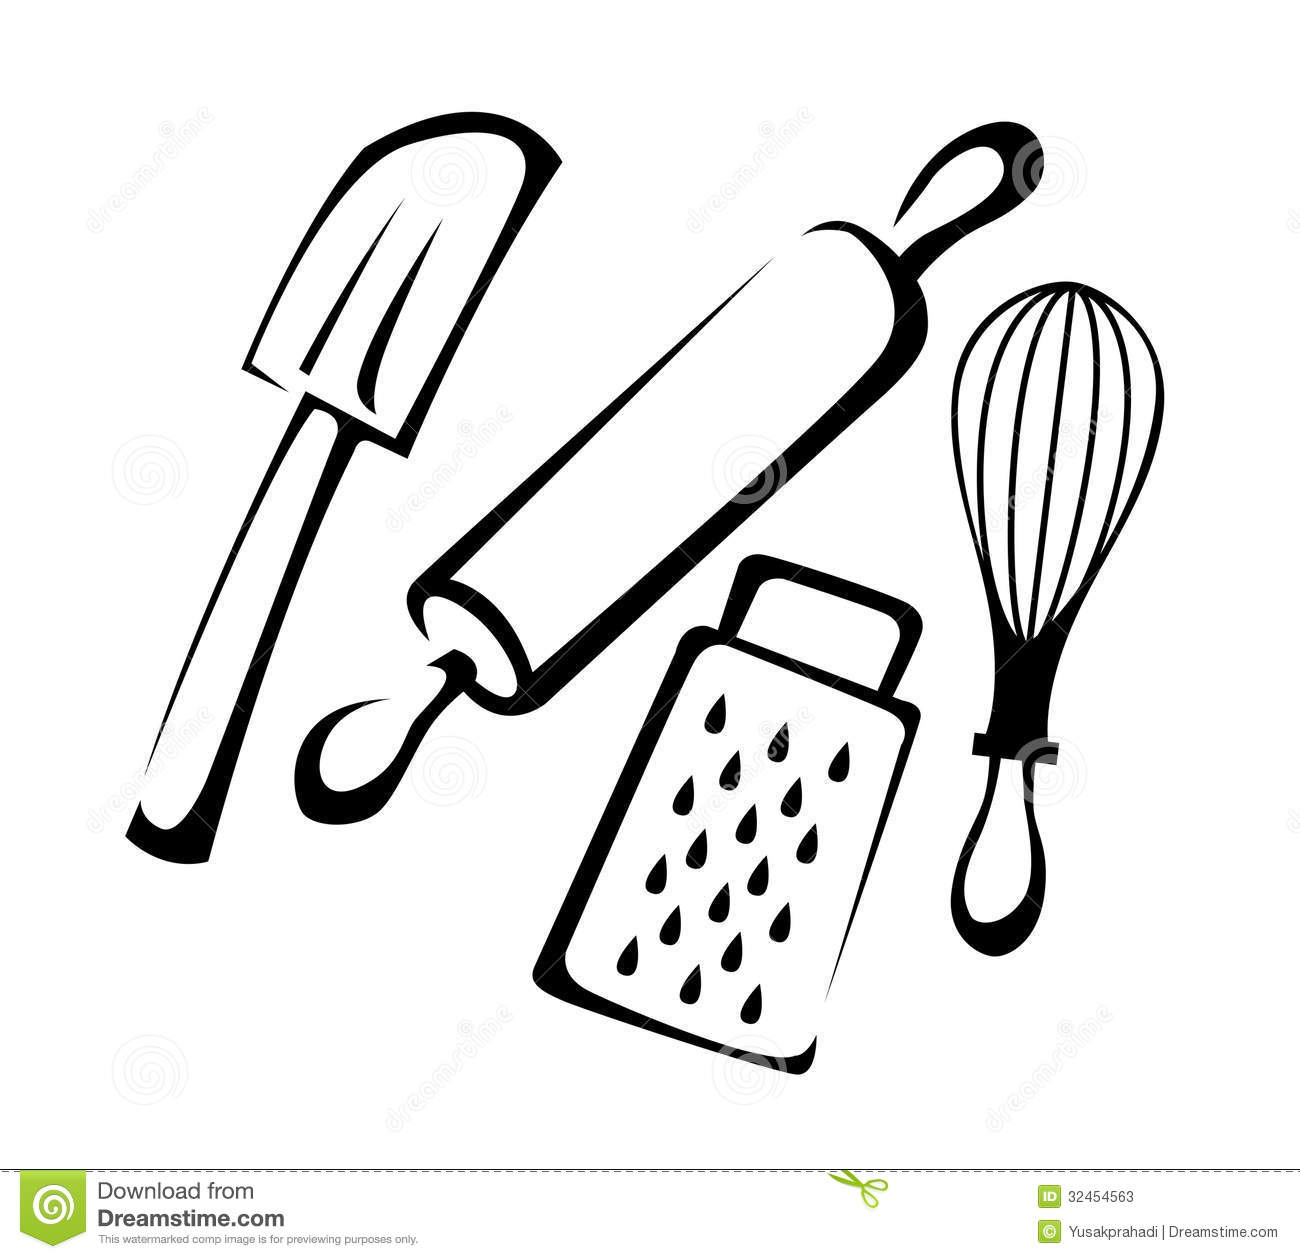 Baking items clipart banner free Baking tools clipart 4 » Clipart Station banner free